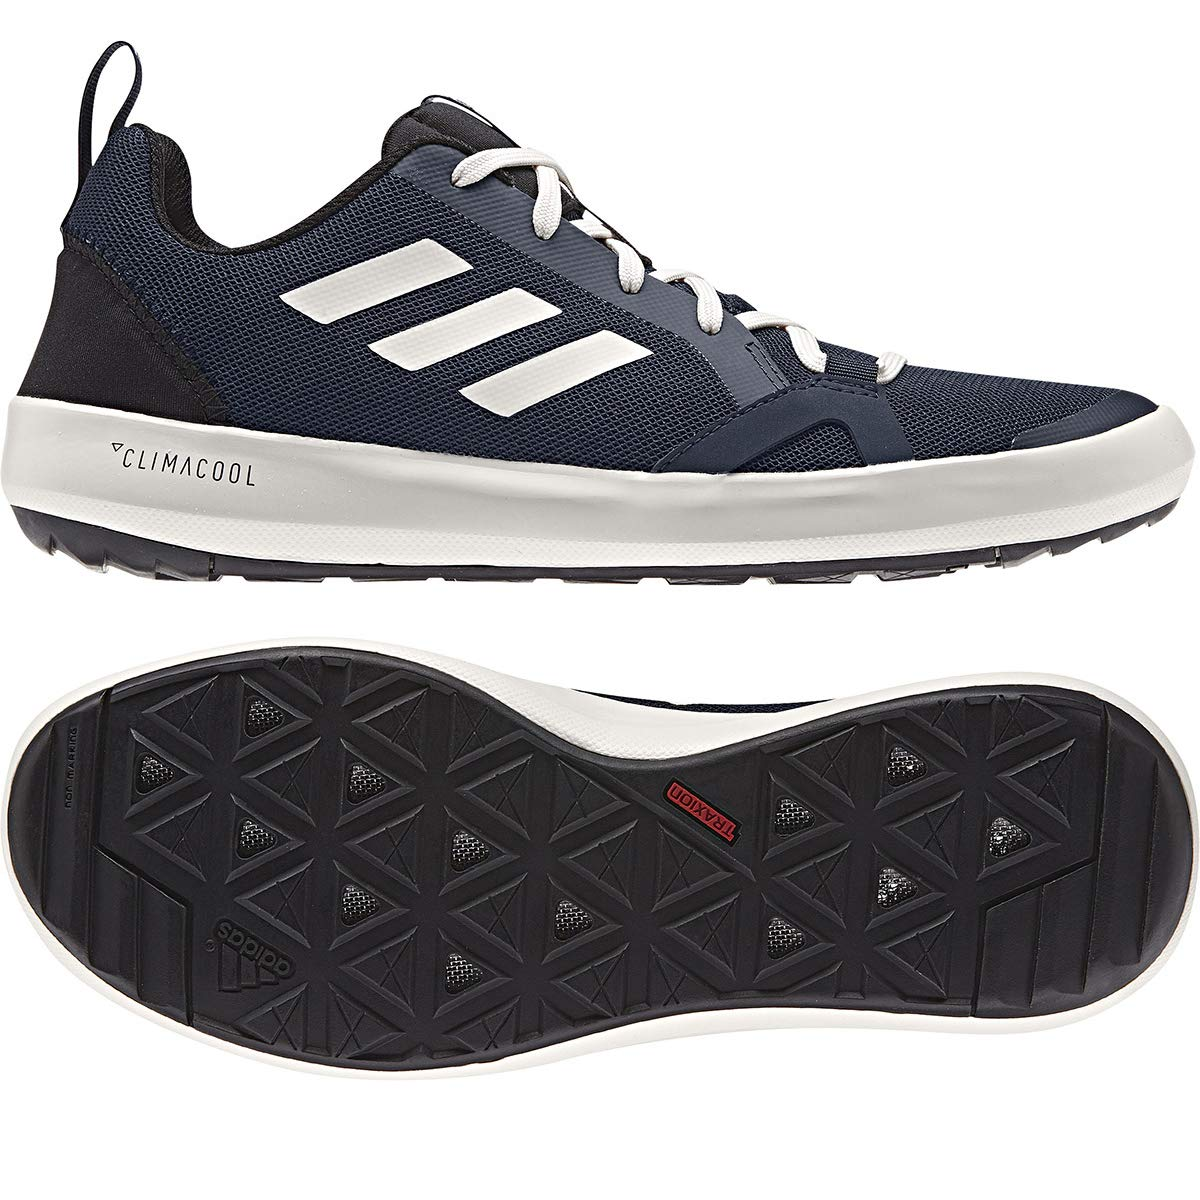 Adidas Terrex CC Boat Shoe - Men's Collegiate Navy/Chalk White/Black 6.5